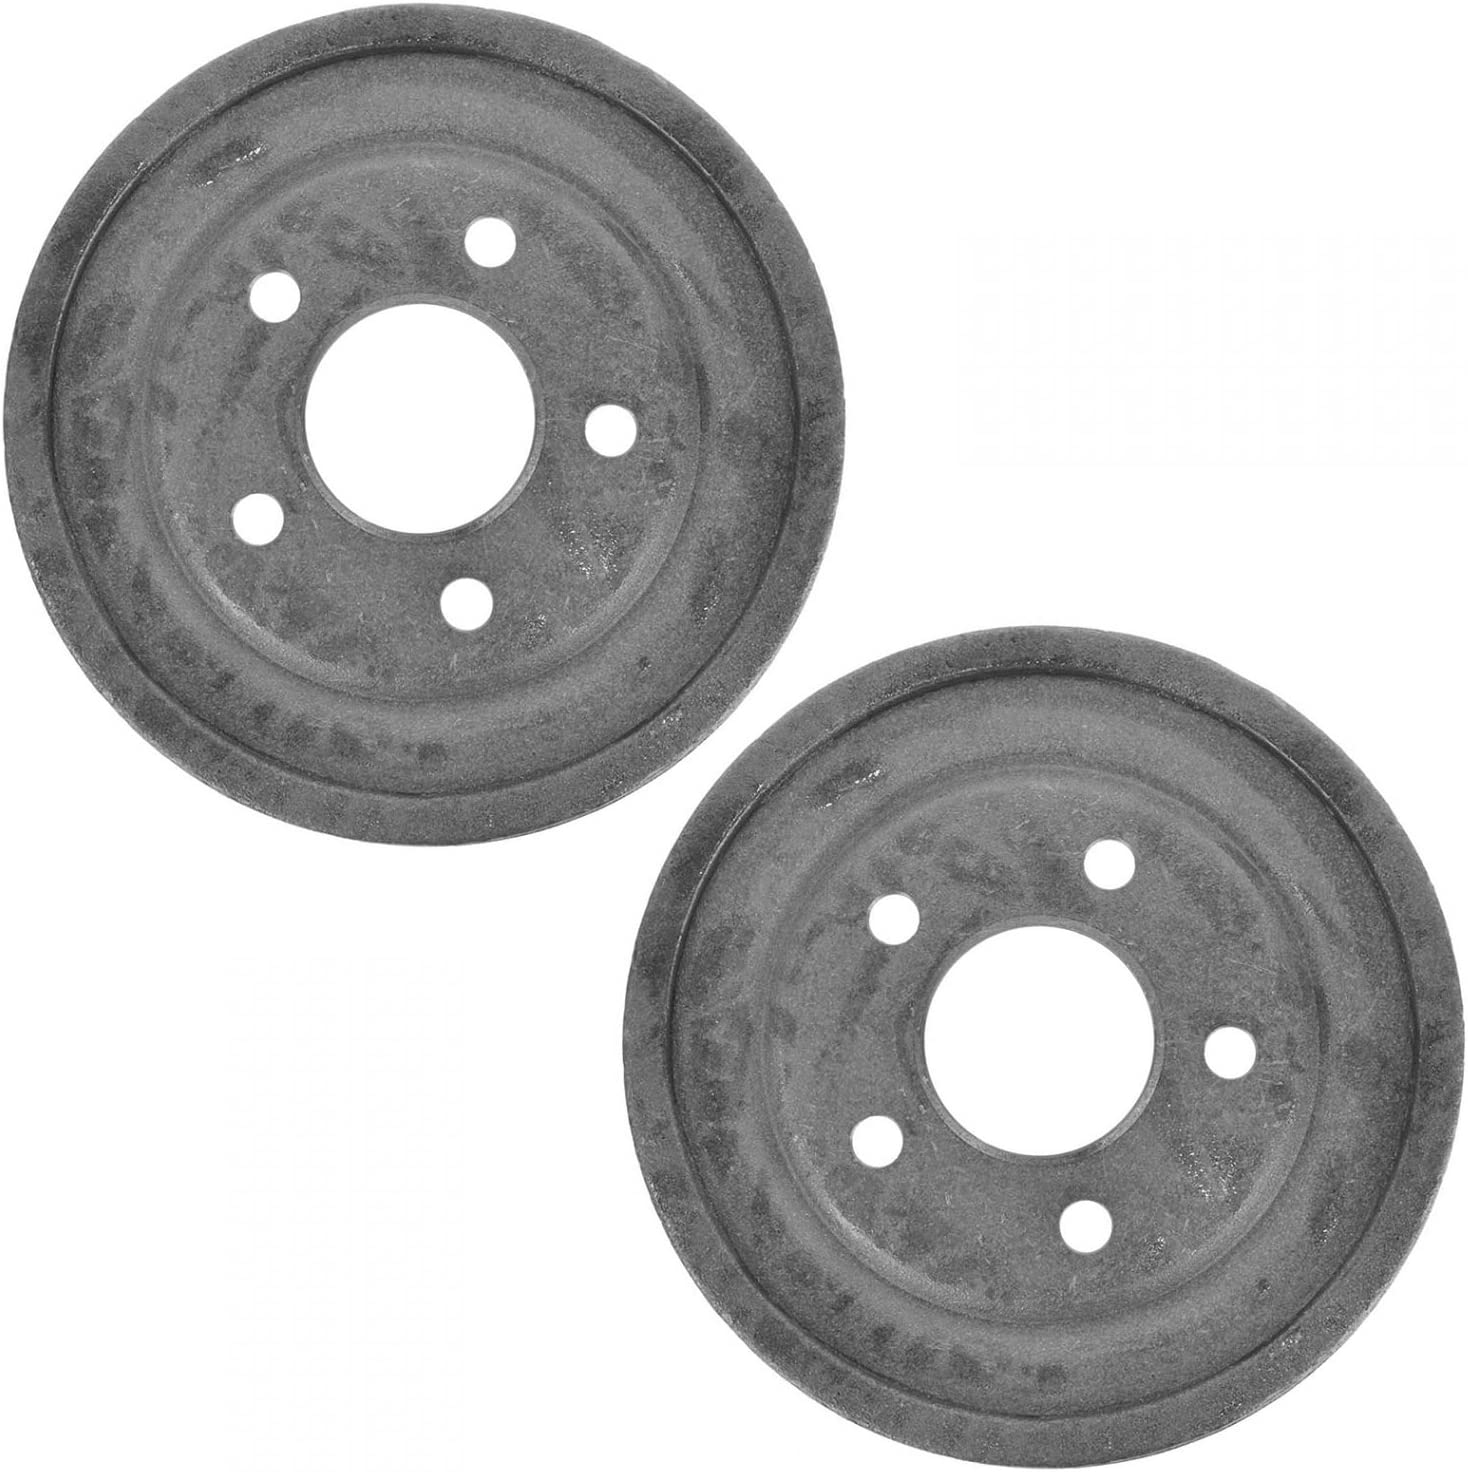 2002 Fits Jeep TJ Rear Drum Brake Shoe With Two Years Warranty 4 Pieces Included For Both Left and Right